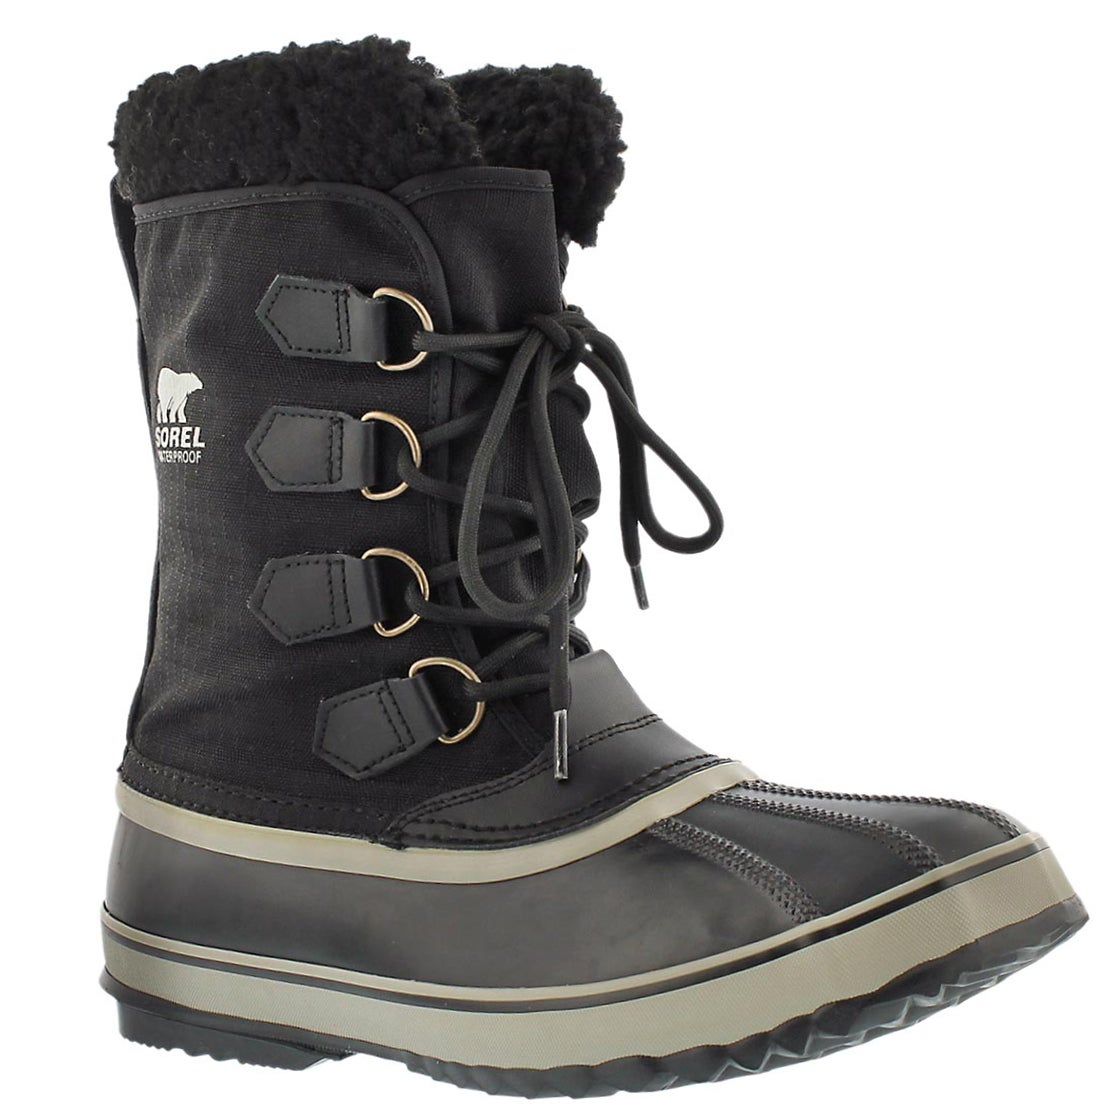 f8a8cfbcbe4 Men's 1964 PAC NYLON black winter boots